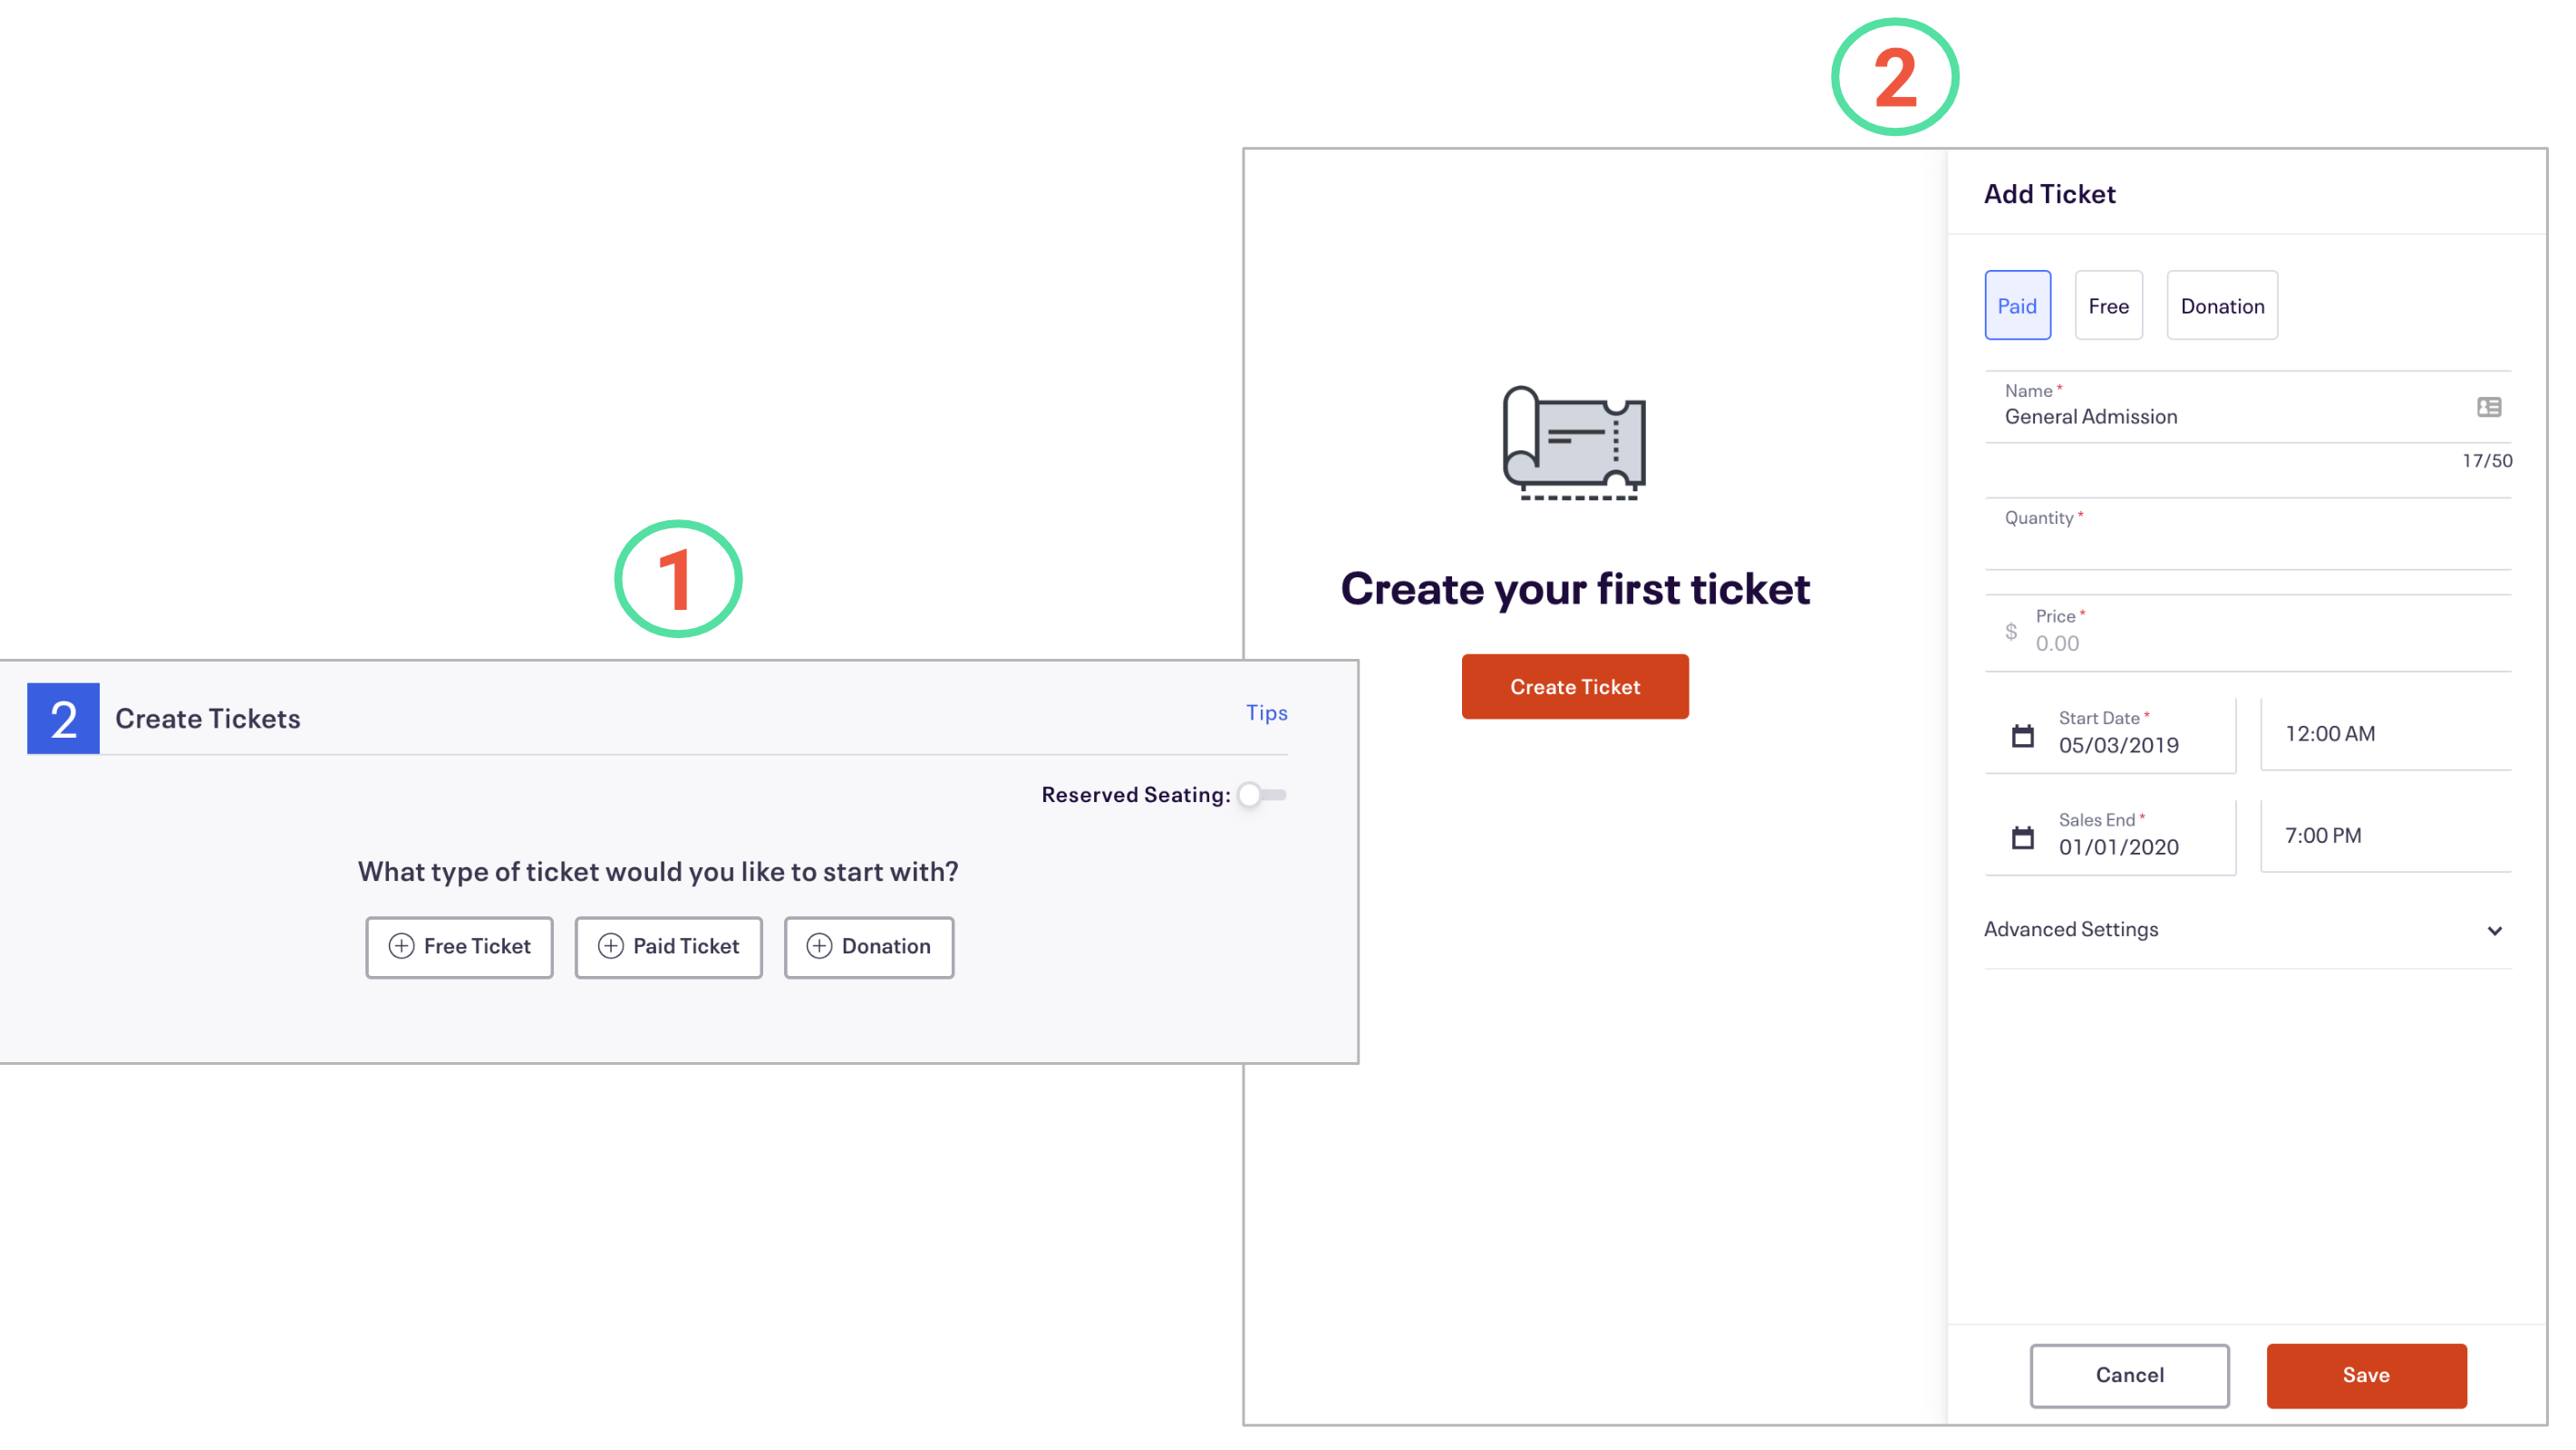 Image highlighting (1) classic versus (2) new event creation experience differences for 2: Create Tickets and how it maps to Tickets.